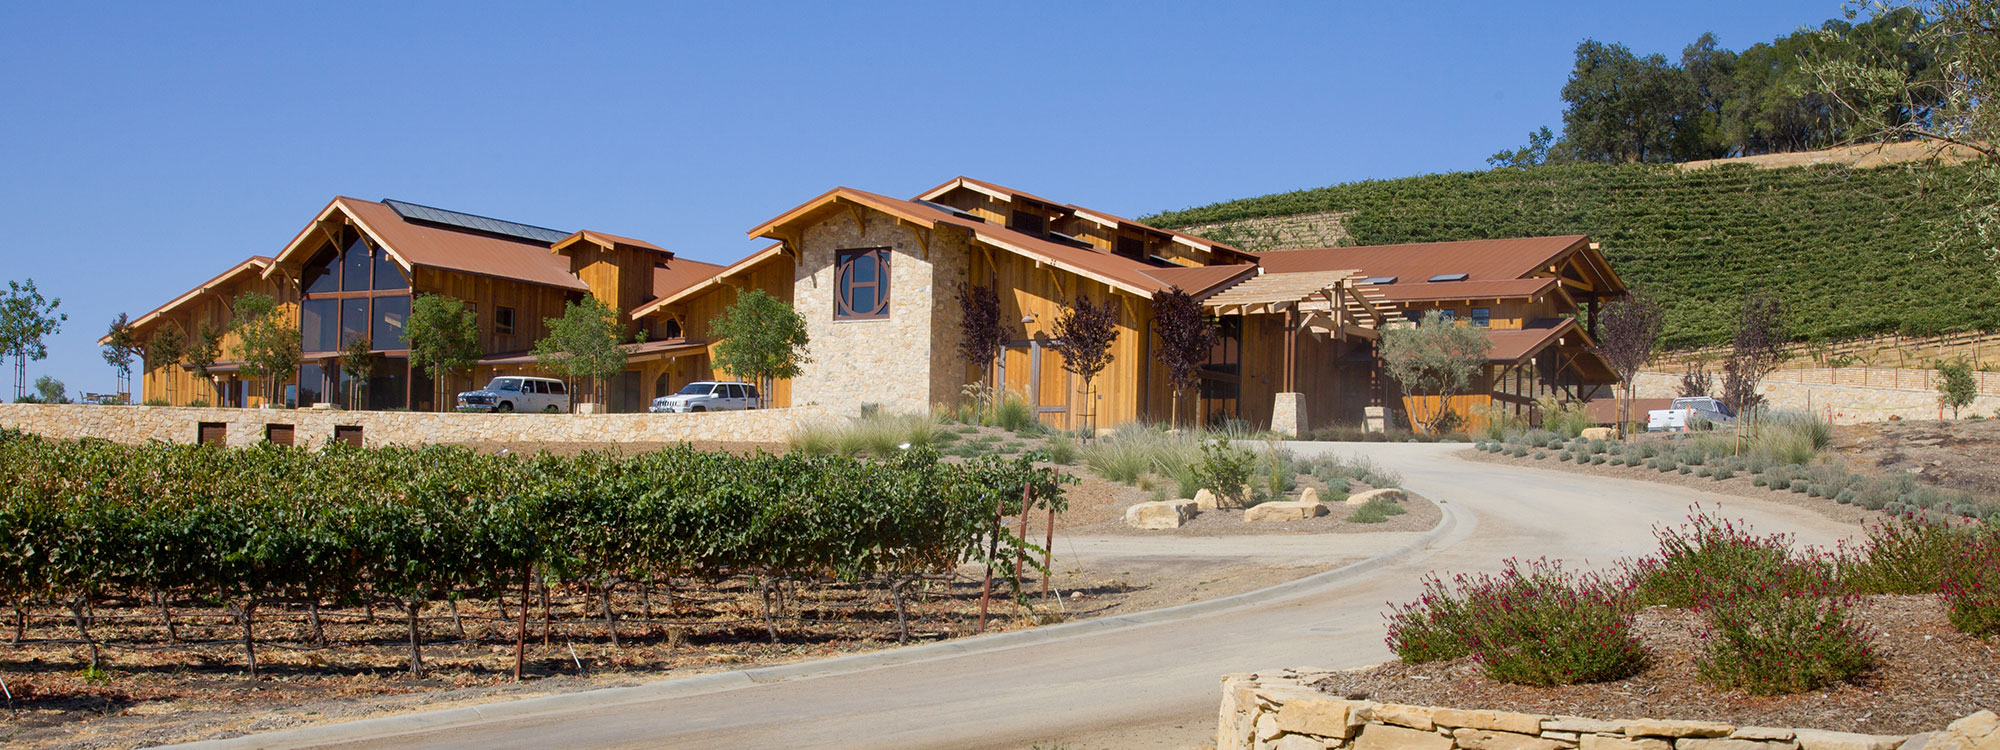 Paso Robles Contractor - Winery Construction Crew - JW Design & Construction